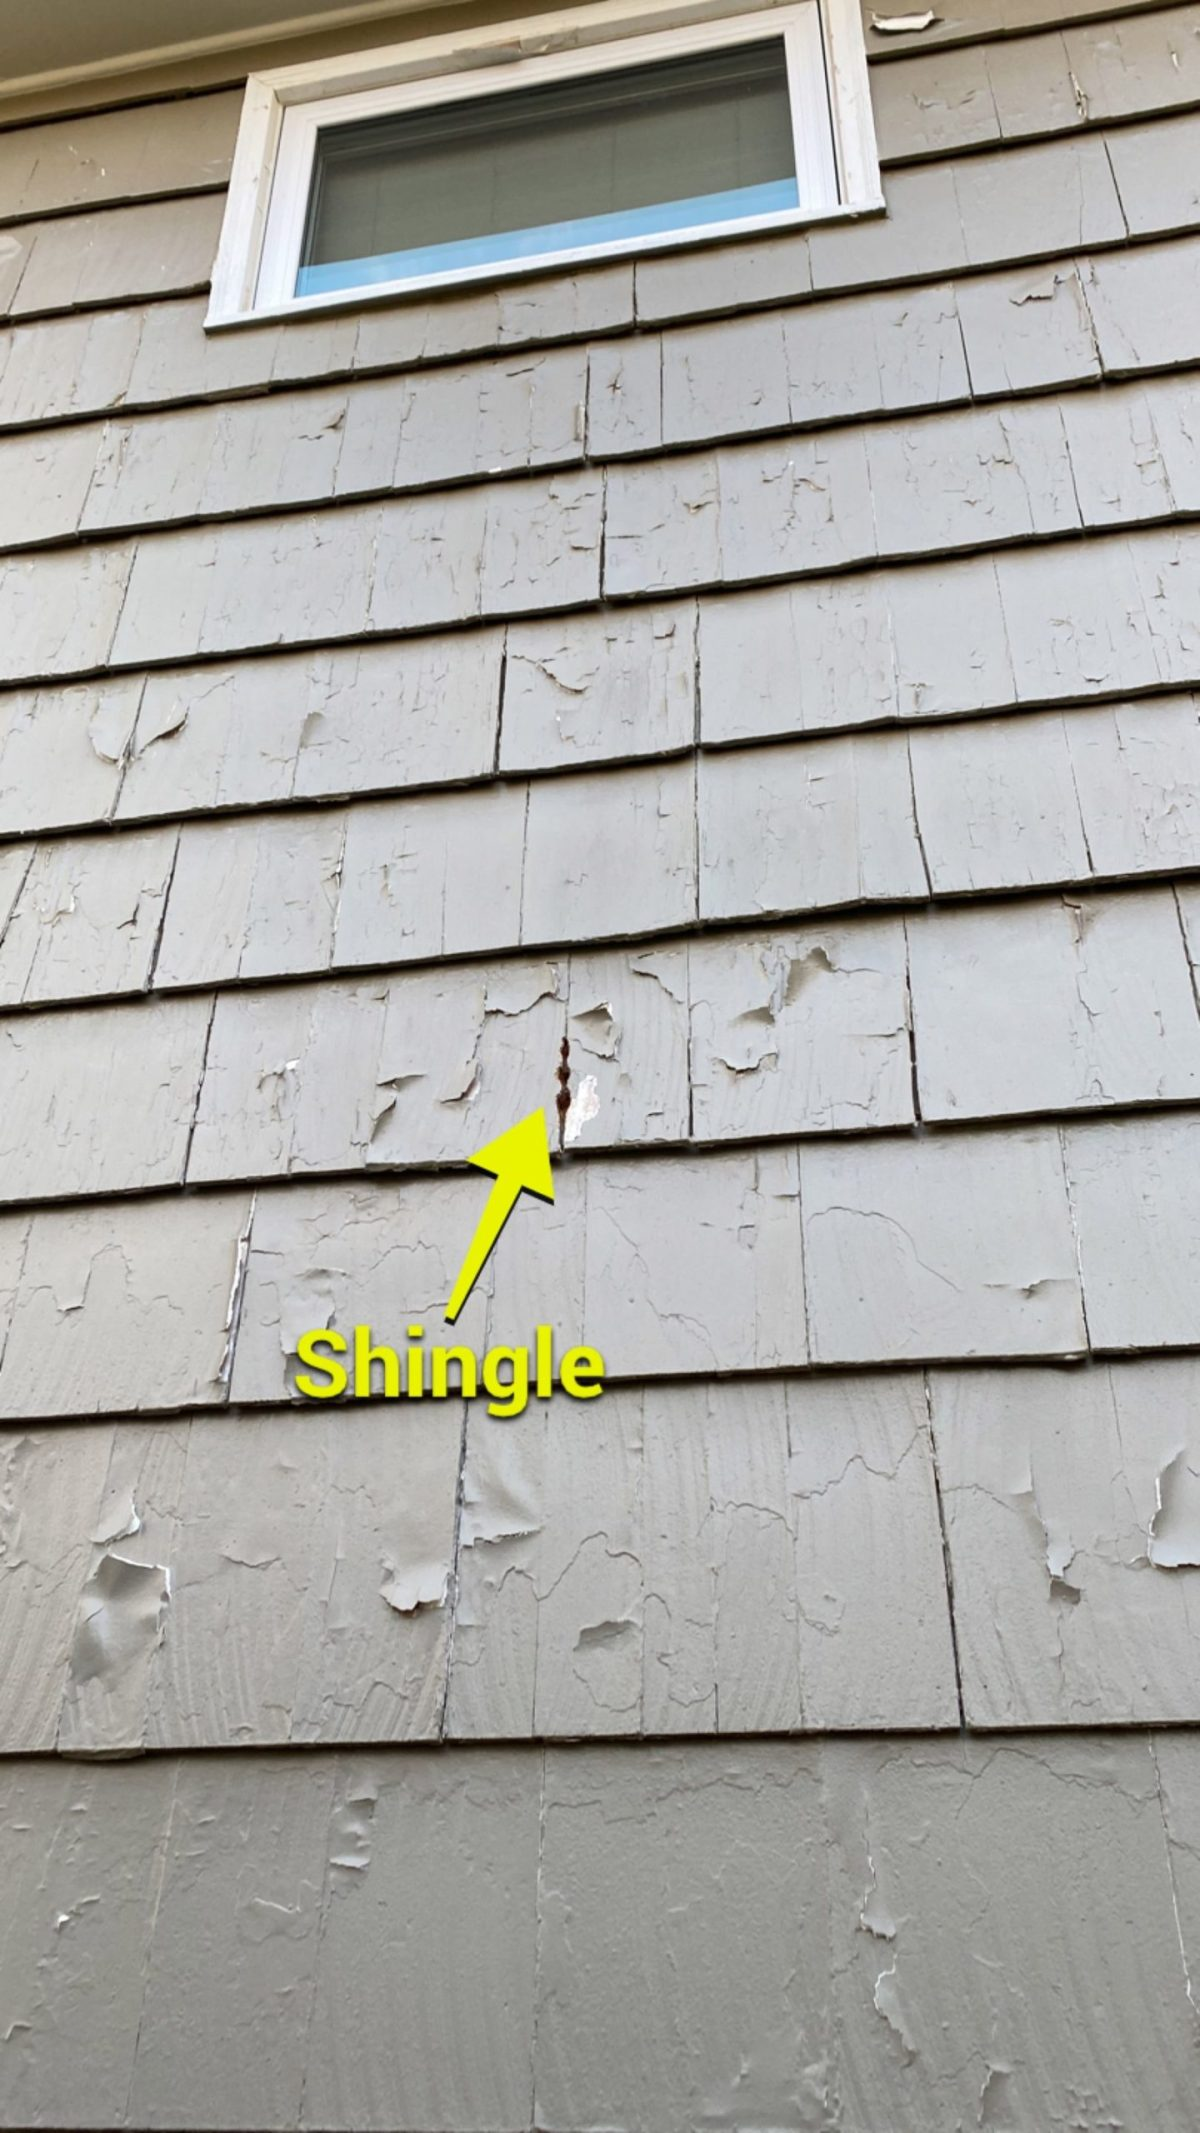 bad shingle scaled - How Much Will It Cost to Paint my Exterior - Overland Park, Lee's Summit, Kansas City Painting